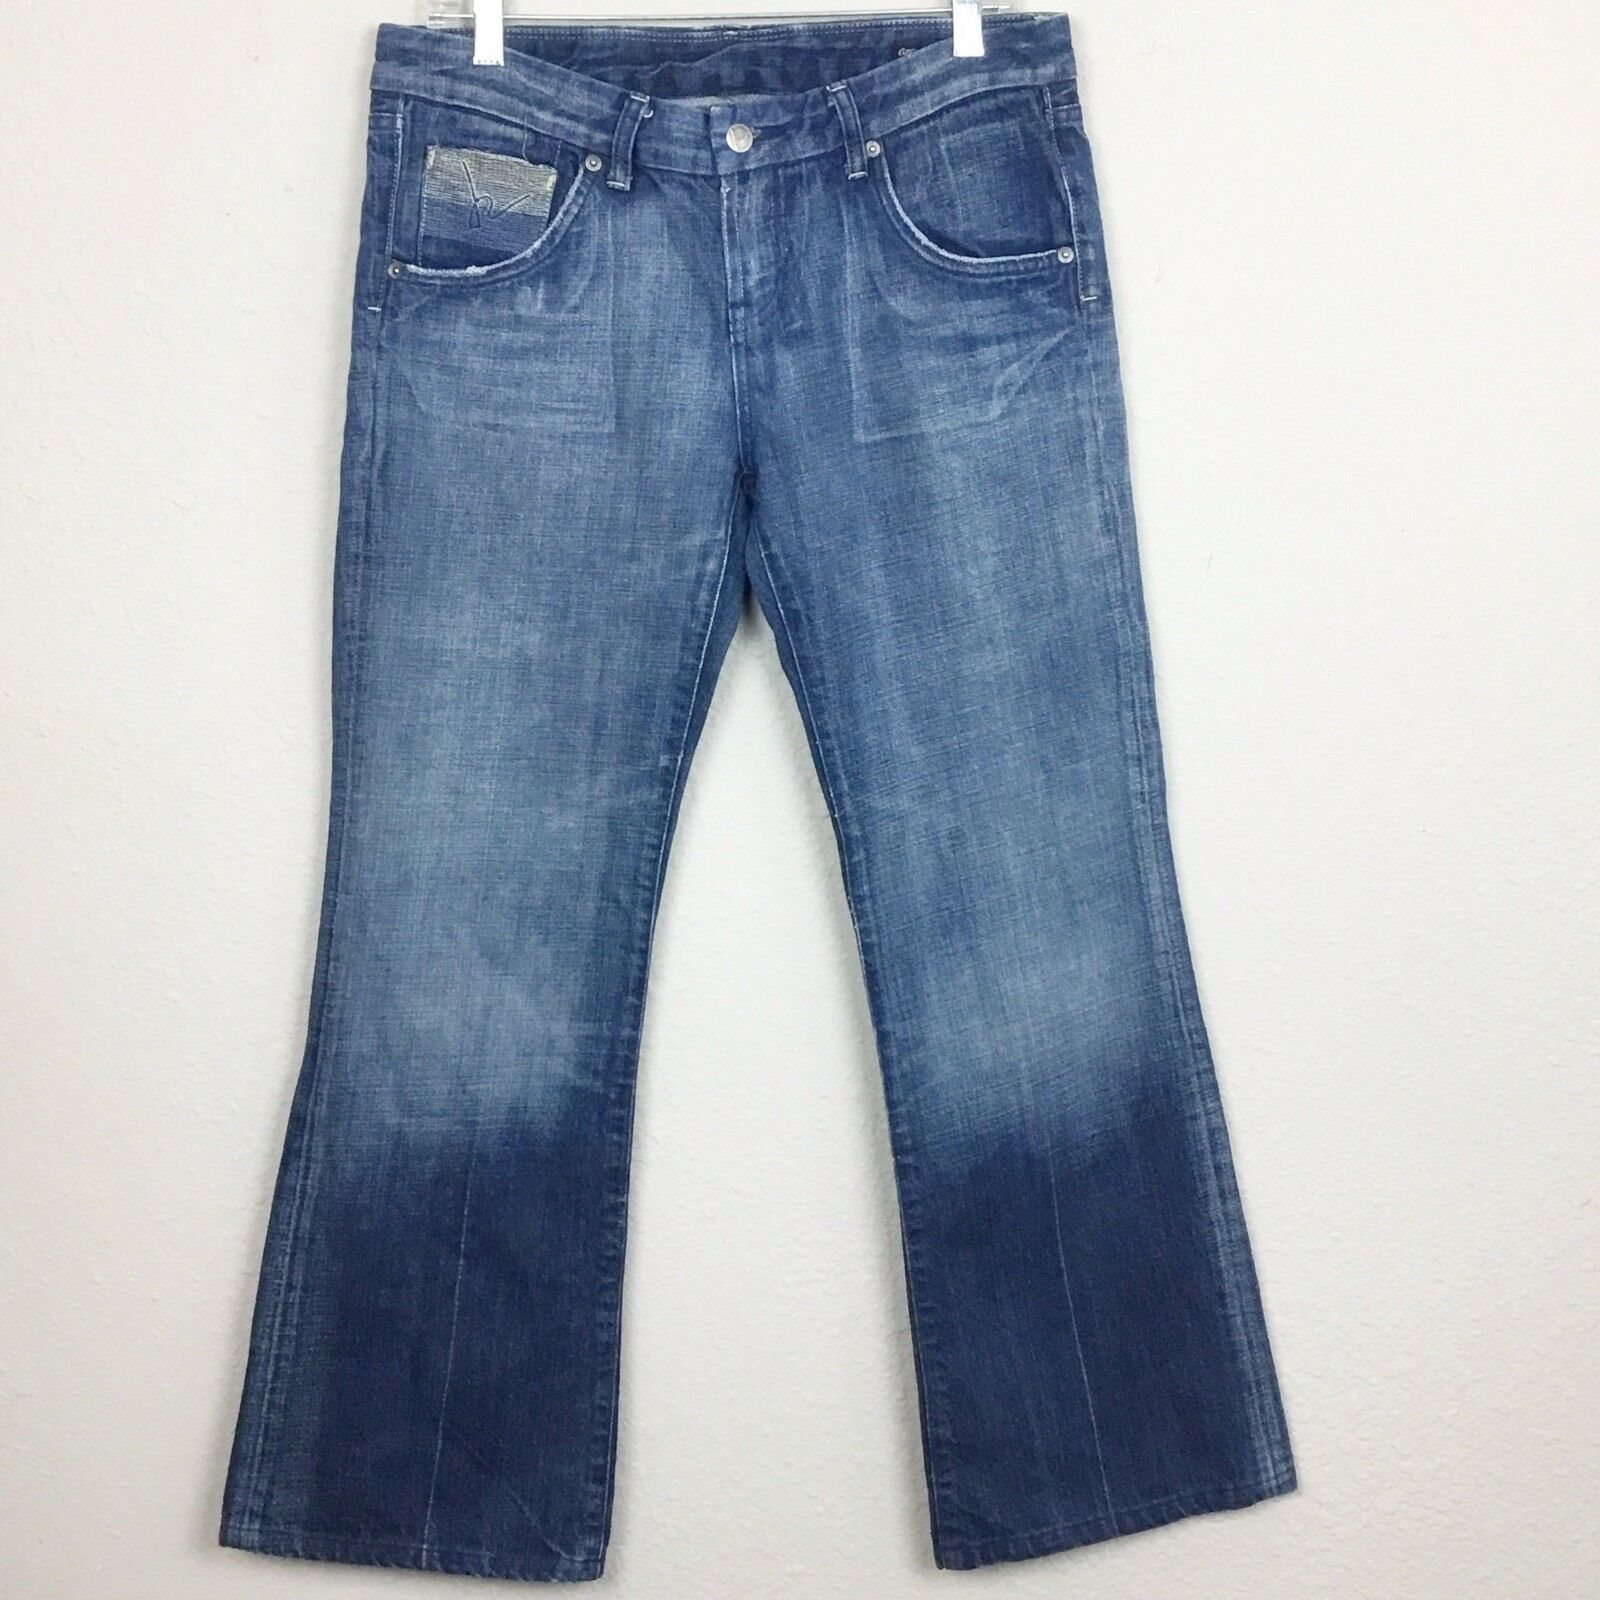 Citizens Of Humanity Cut 1477 Medium Wash Jeans Size 31